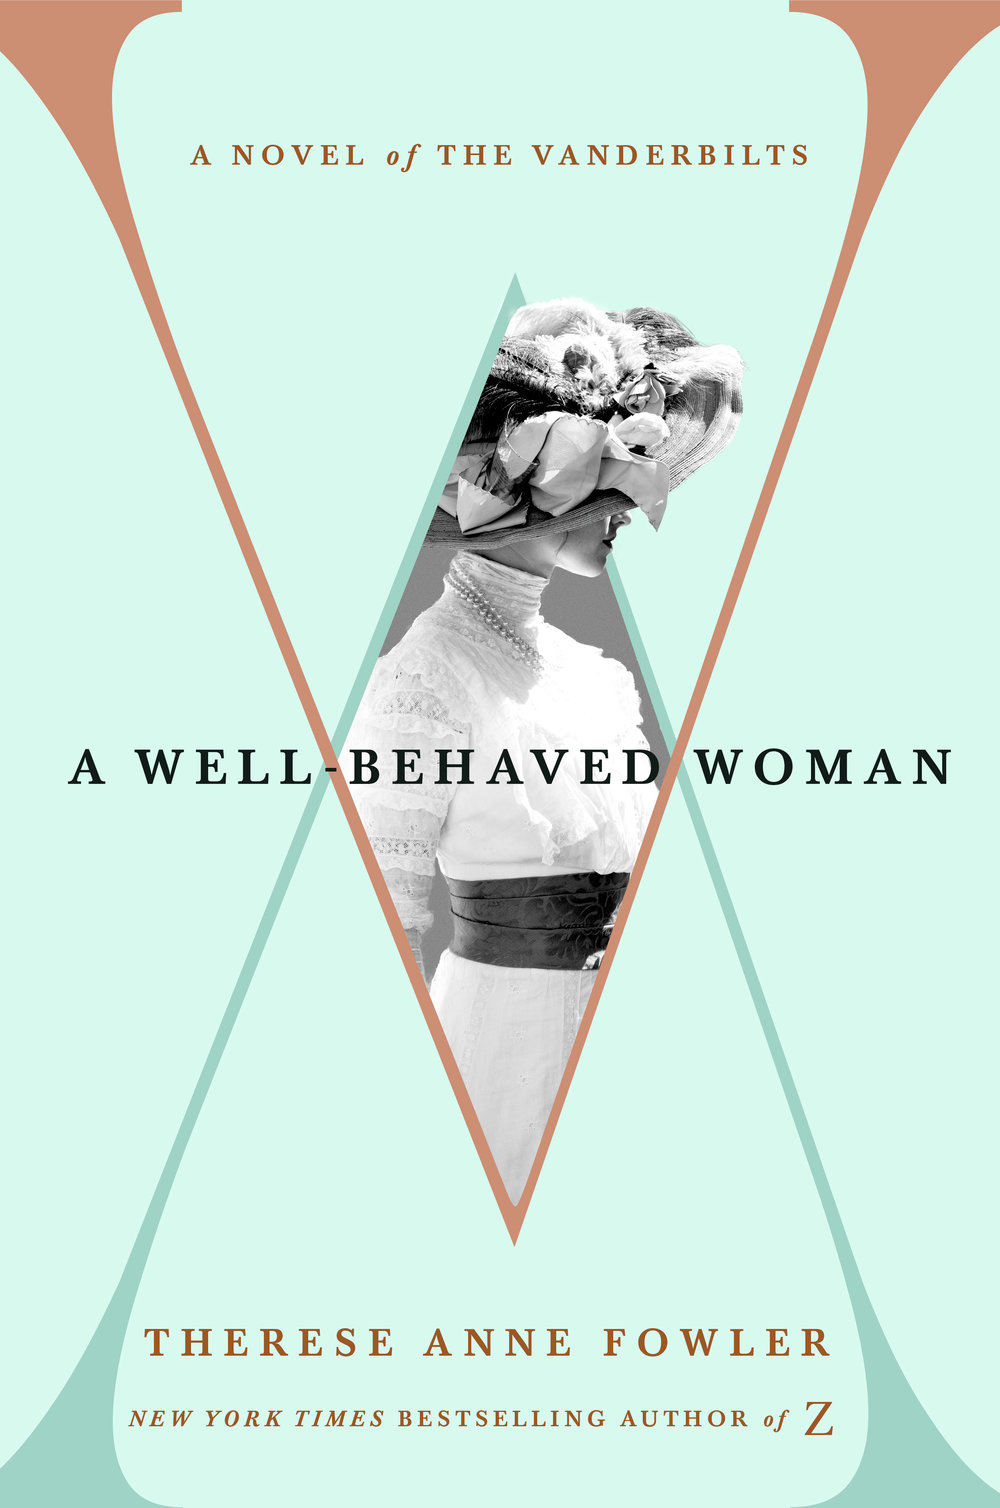 well behaved woman_Cover High Res.jpg